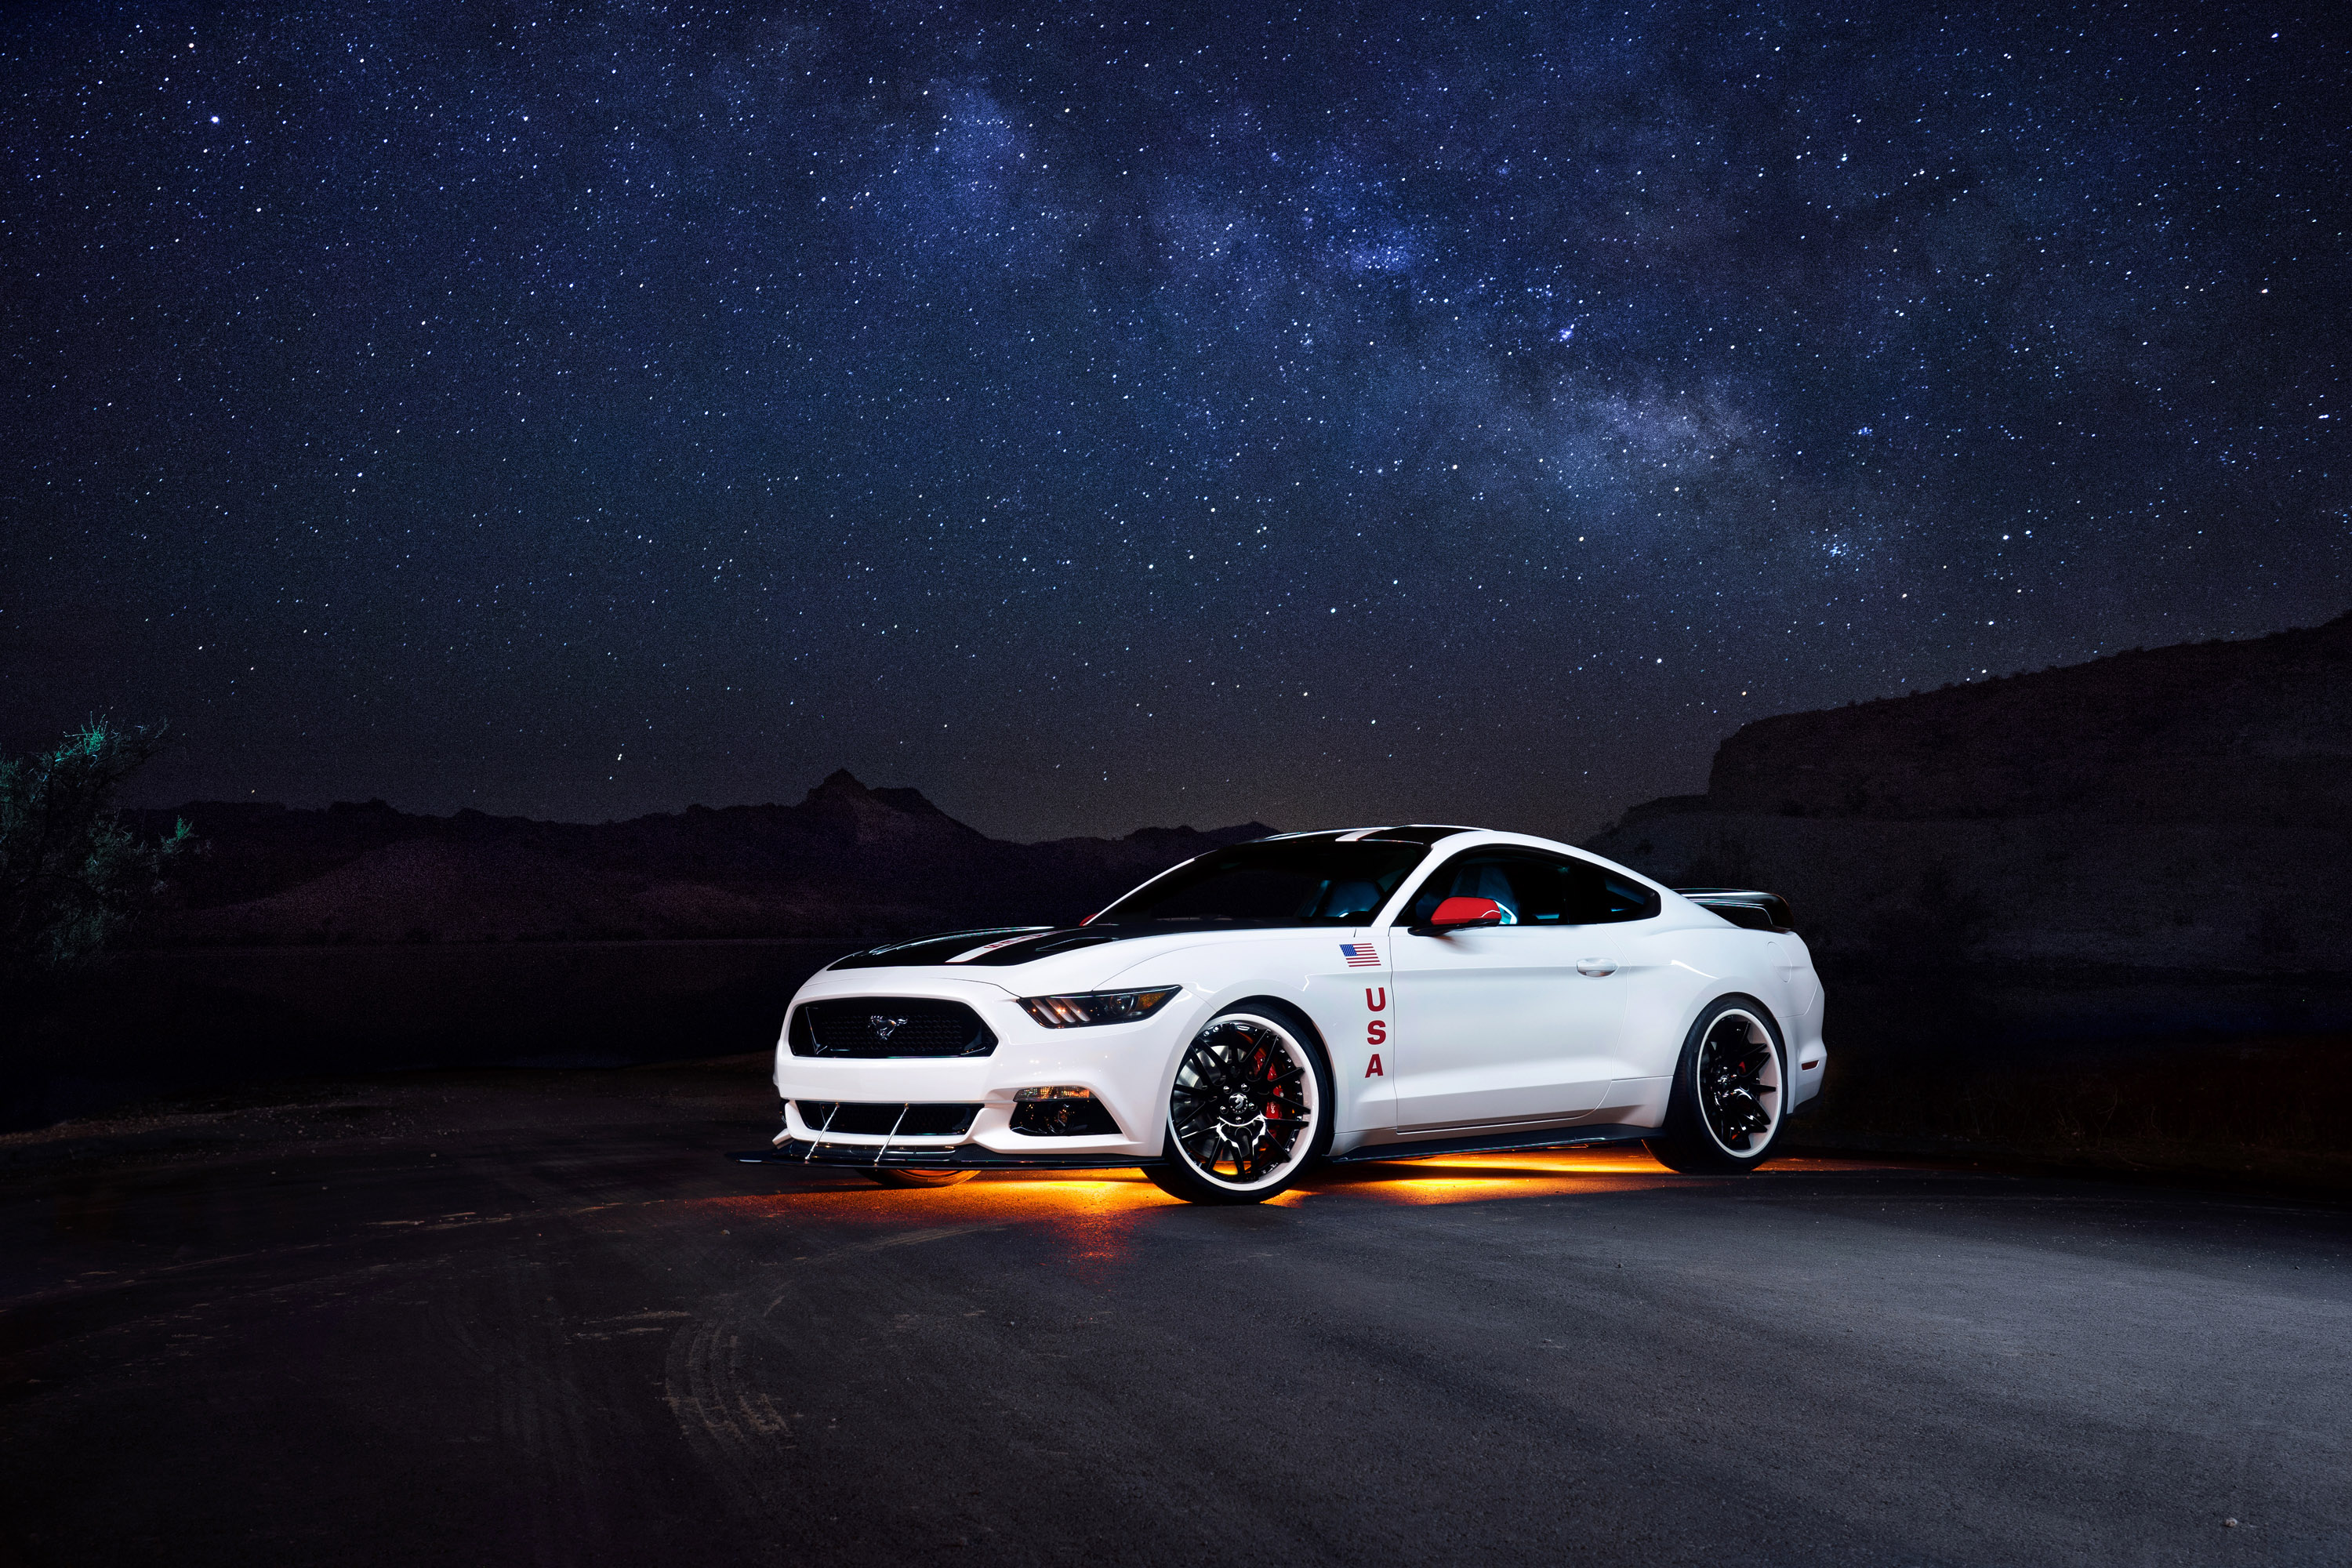 Ford Mustang Apollo Edition photo #1